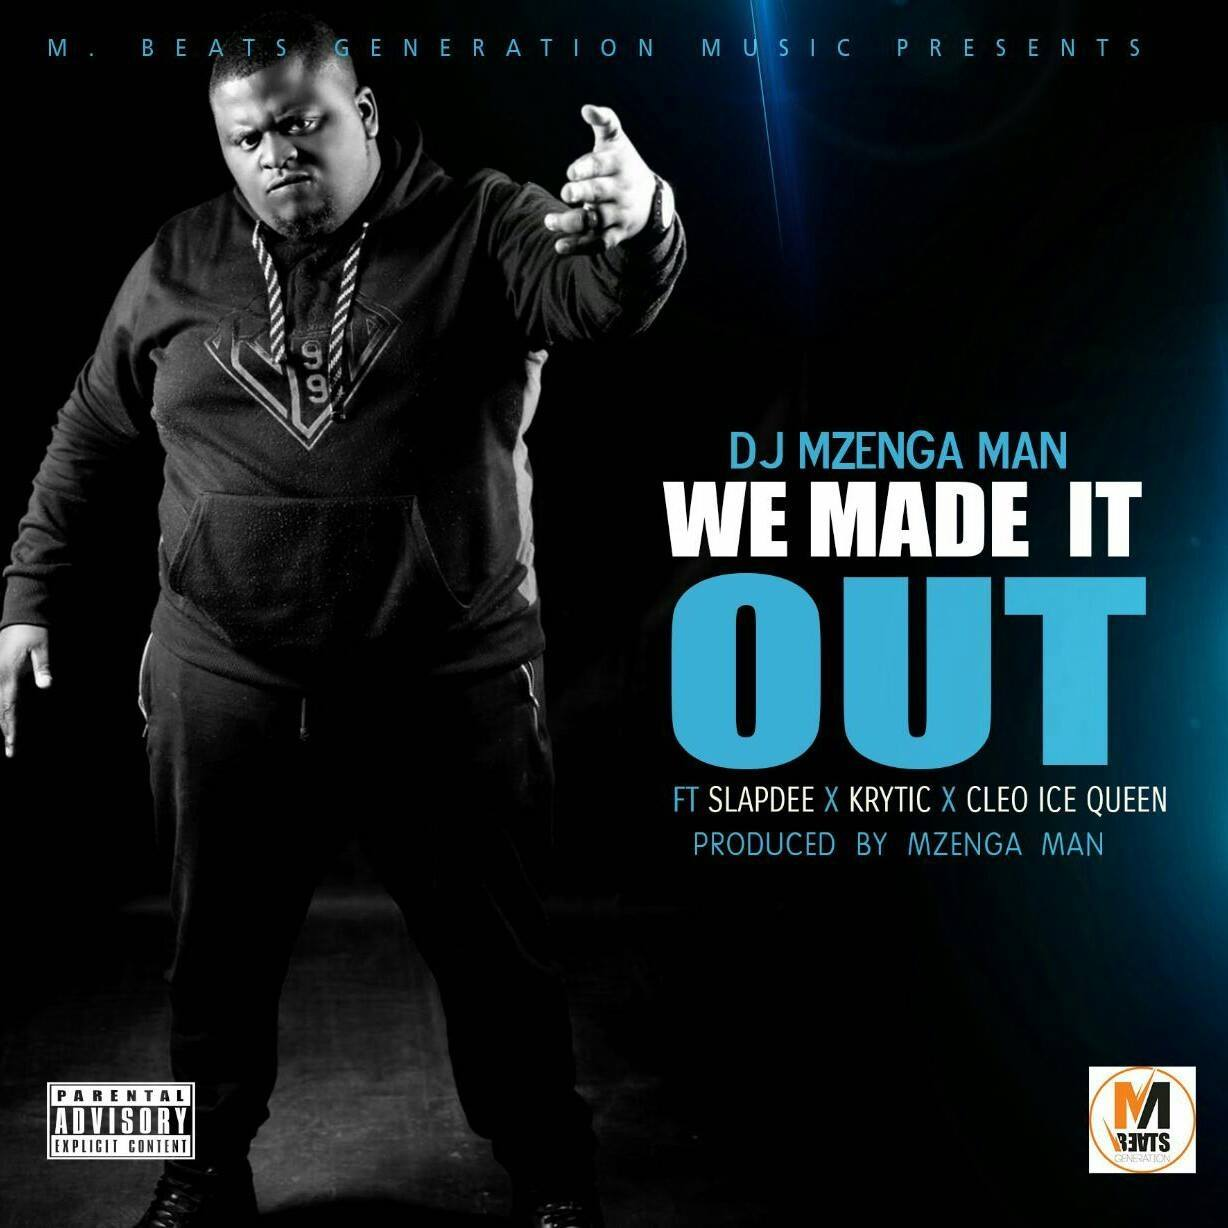 """DJ Mzenga Man X Slapdee X Krytic X Cleo Ice Queen – """"We Made It Out"""""""